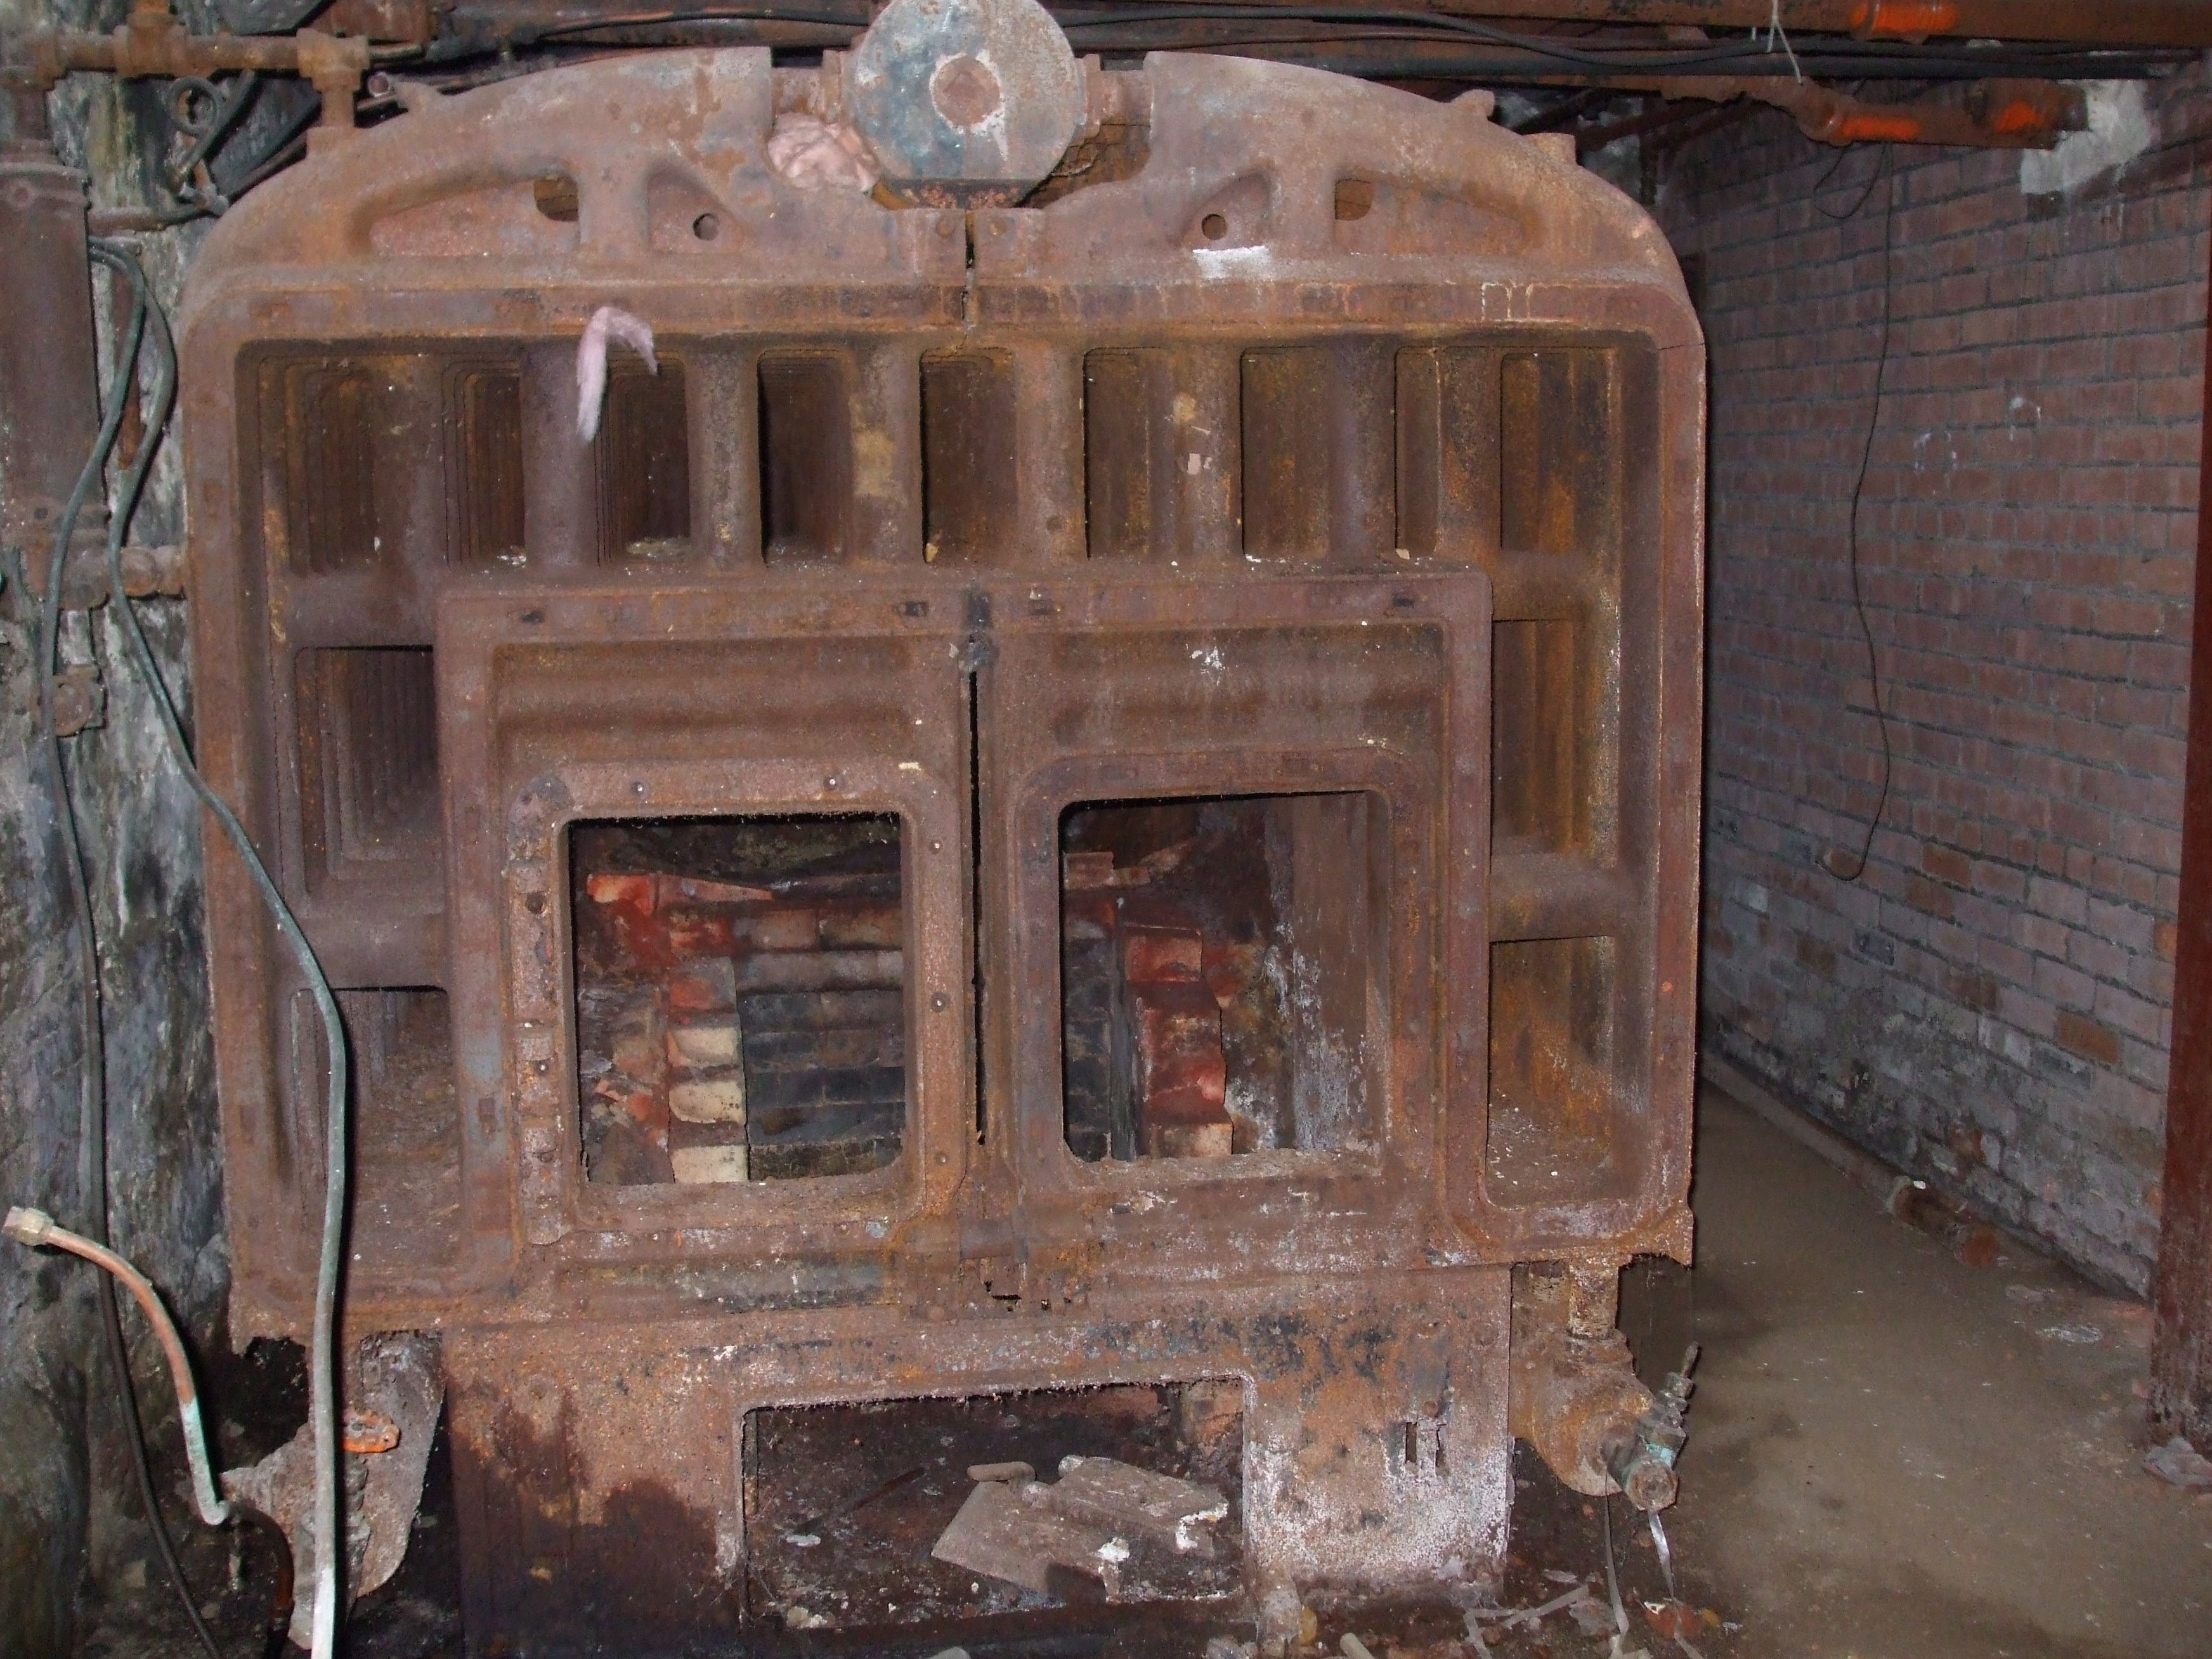 Do You Believe This Old Furnace It Used To Heat A